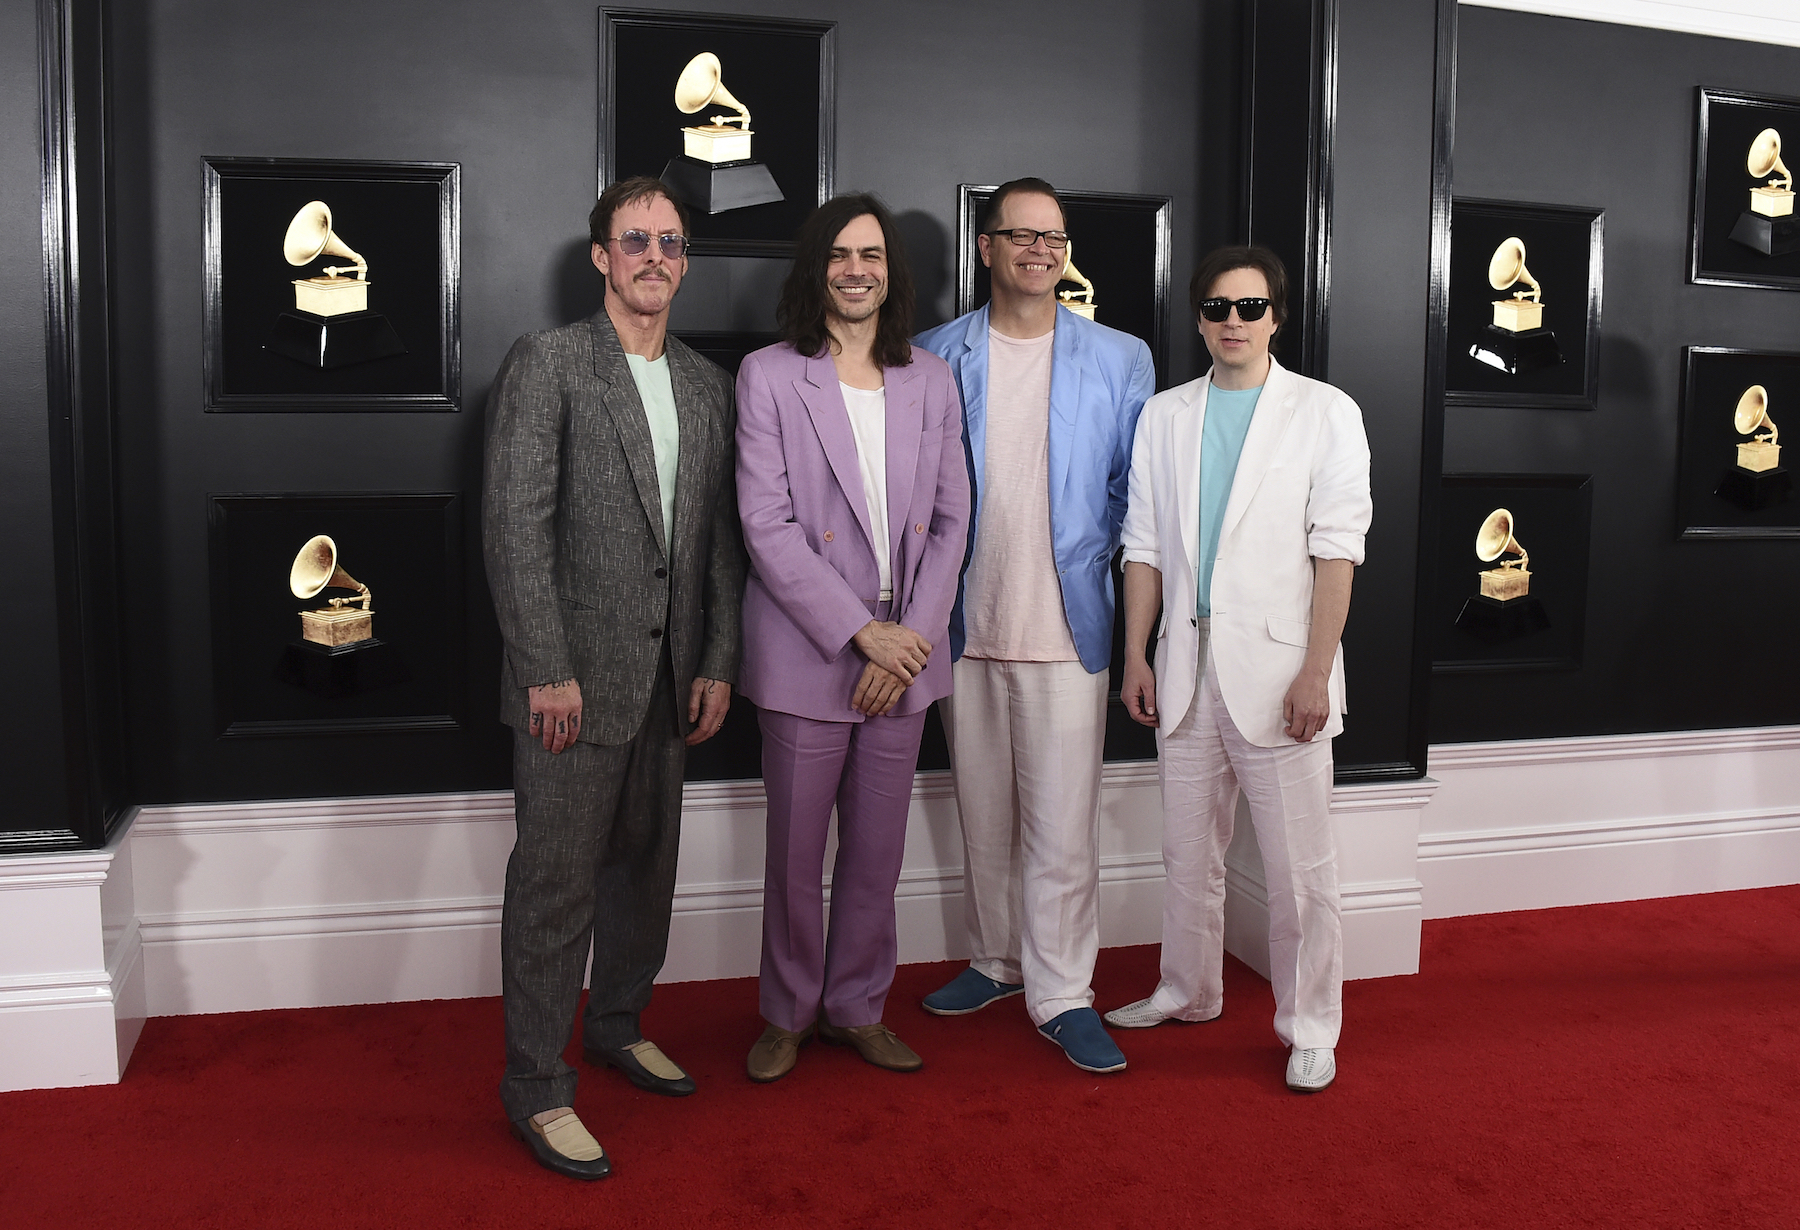 <div class='meta'><div class='origin-logo' data-origin='AP'></div><span class='caption-text' data-credit='Jordan Strauss/Invision/AP'>Rivers Cuomo, from left, Brian Bell, Patrick Wilson, and Scott Shriner of Weezer arrive at the 61st annual Grammy Awards at the Staples Center on Sunday, Feb. 10, 2019.</span></div>